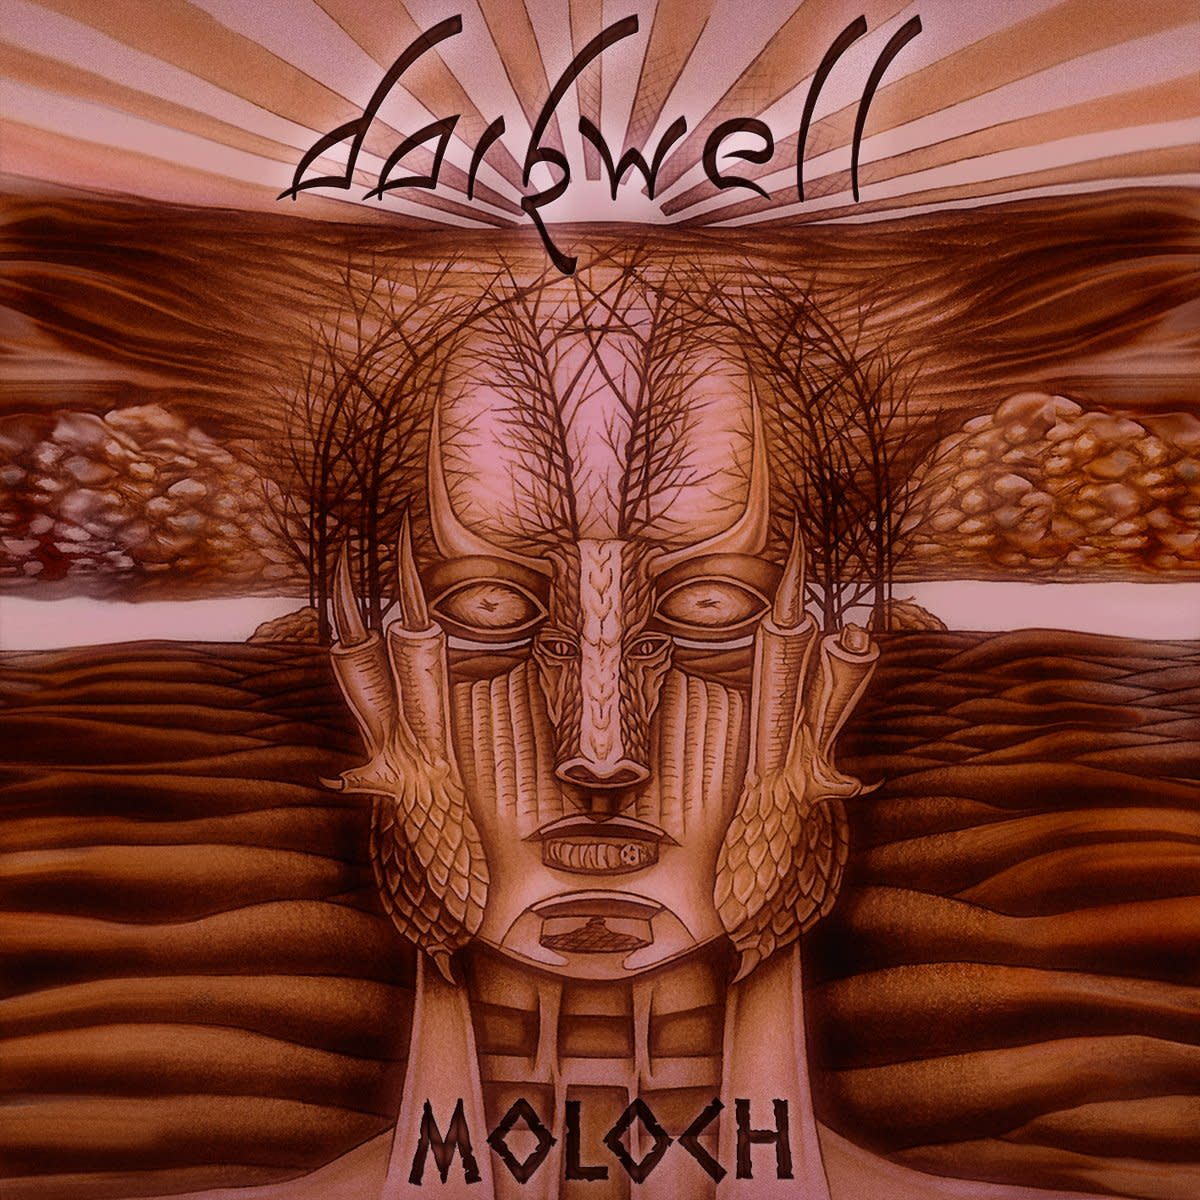 review-of-the-album-moloch-by-austrian-gothic-metal-band-darkwell